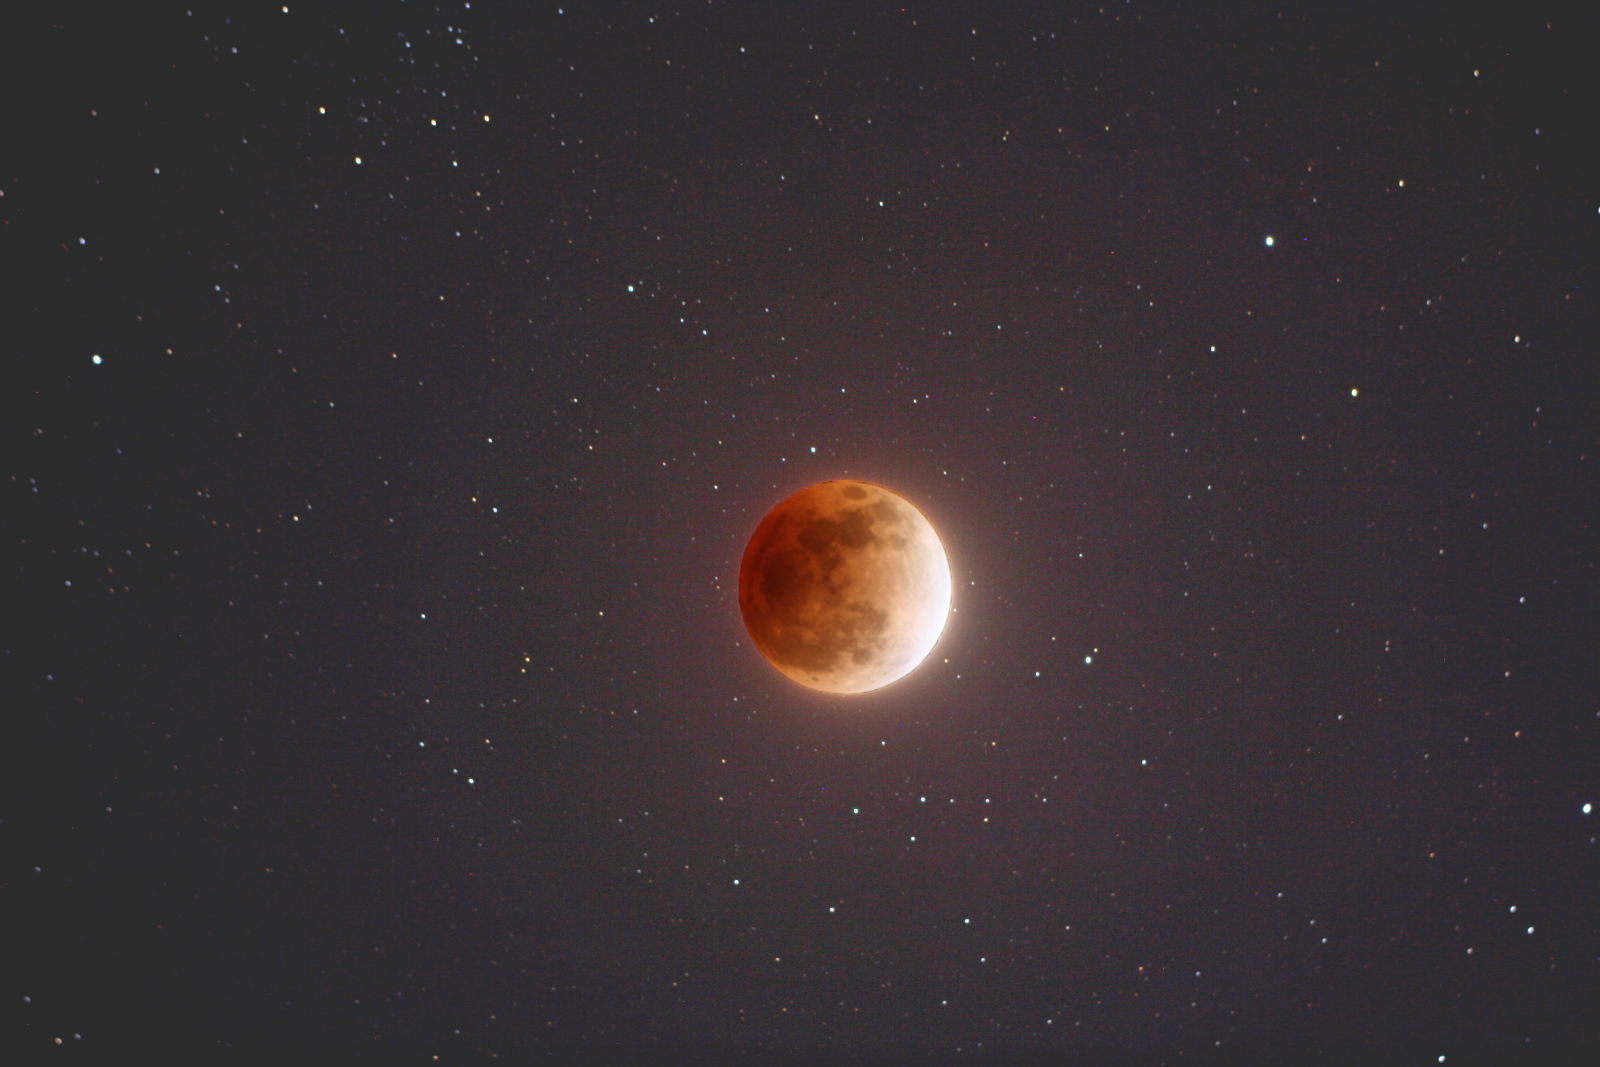 Yet Another Lunar Eclipse